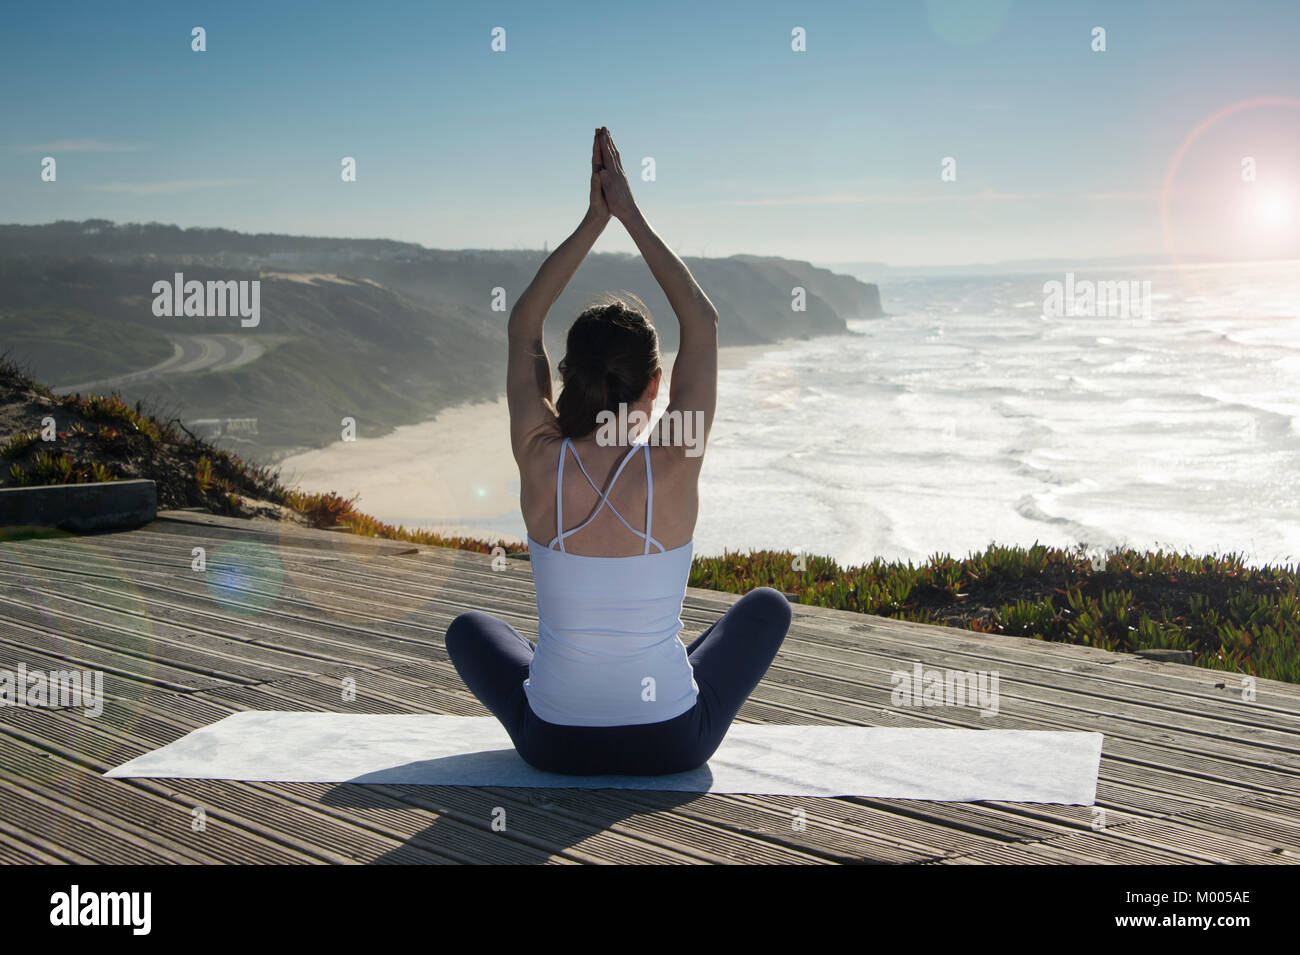 woman sitting in the lotus position meditating with a view over the sea and cliffs. Back view. - Stock Image